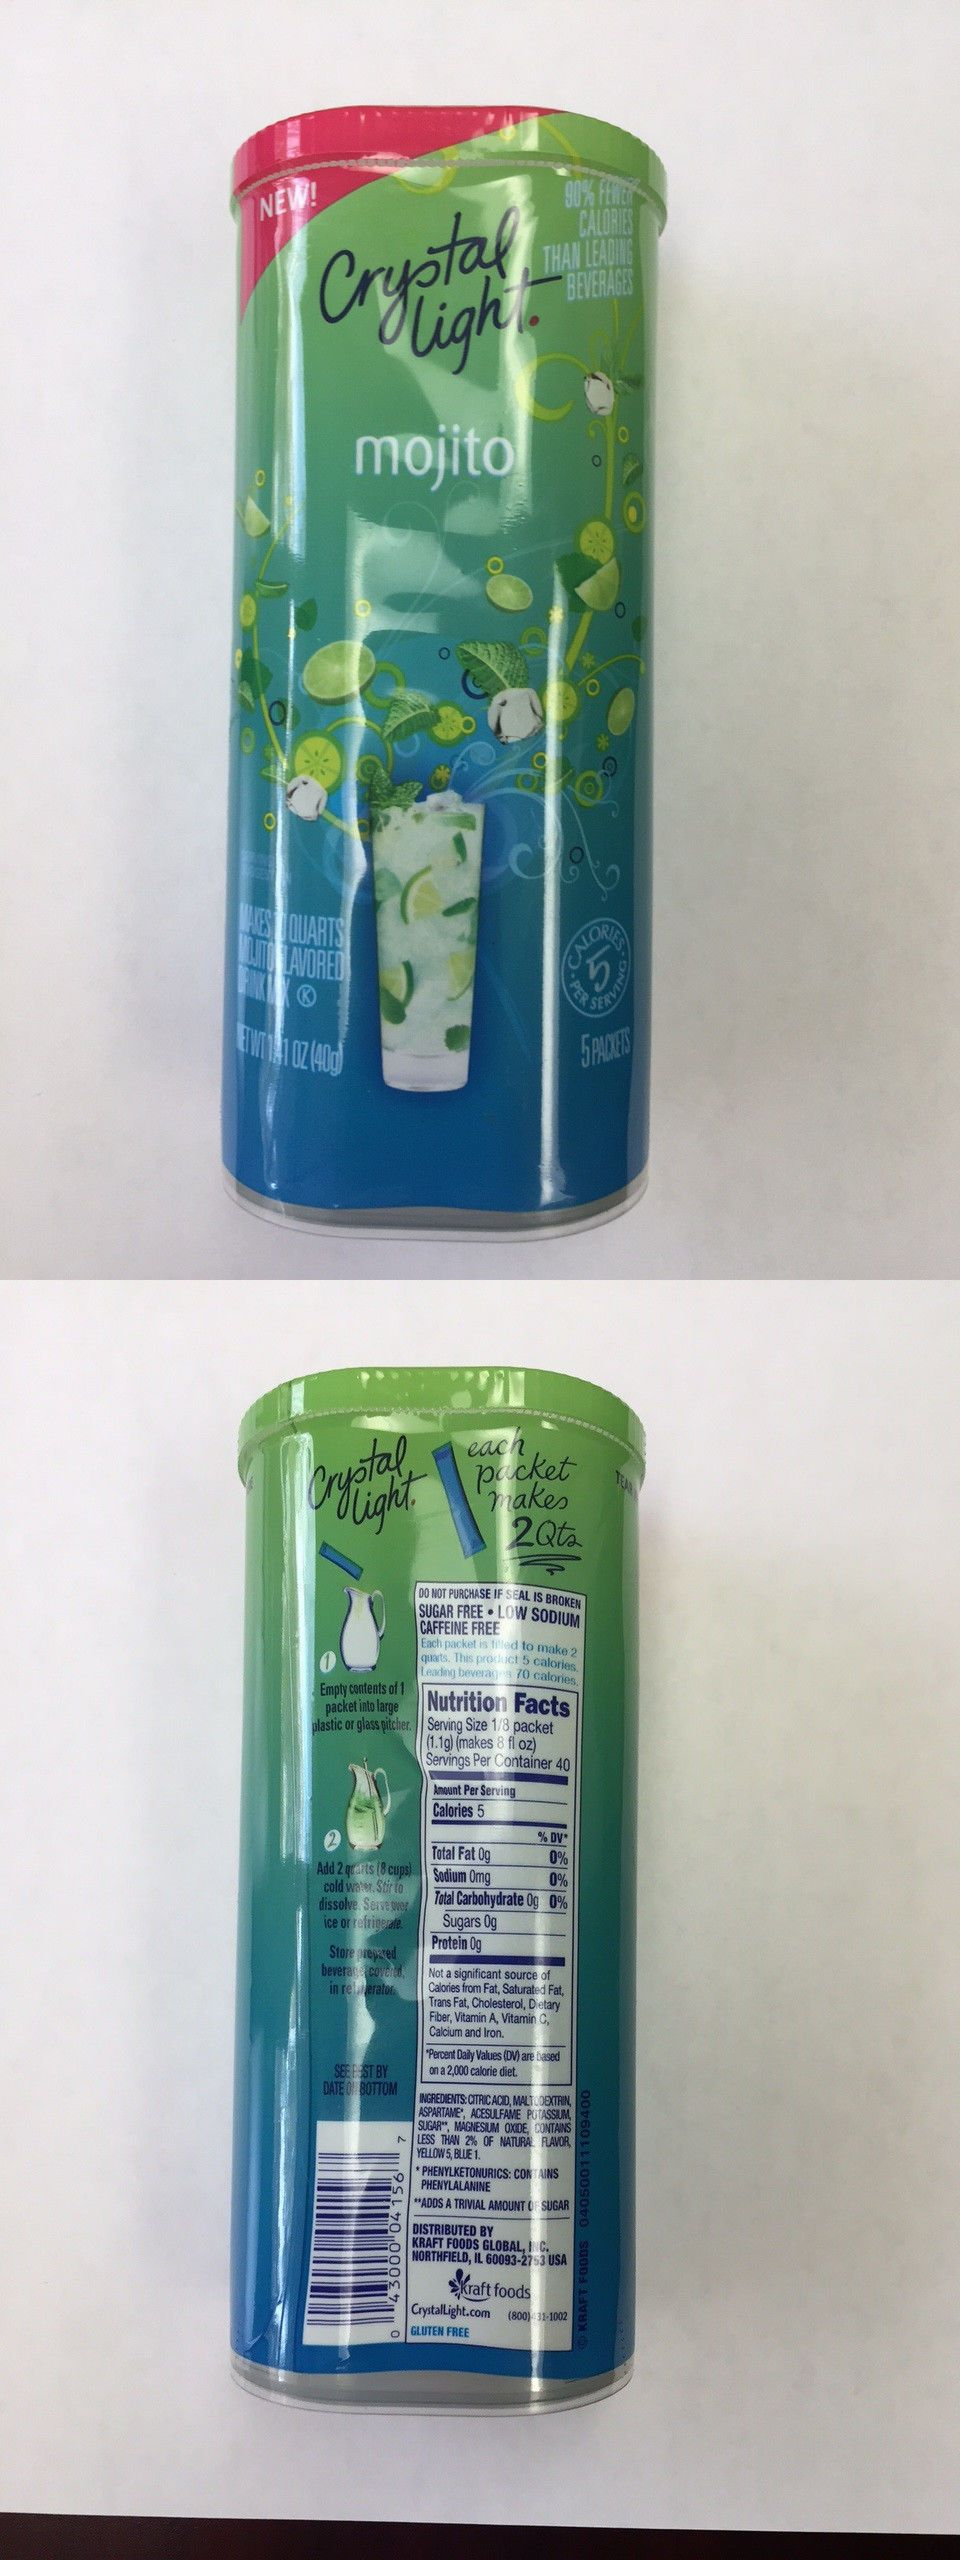 Drink Mixes 179192 Crystal Light Sugar Free Mojito Mix 5 Packs Makes 10 Qts Discontinued Sealed Buy It Now Only 49 99 Mixed Drinks Mocktail Drinks Mojito